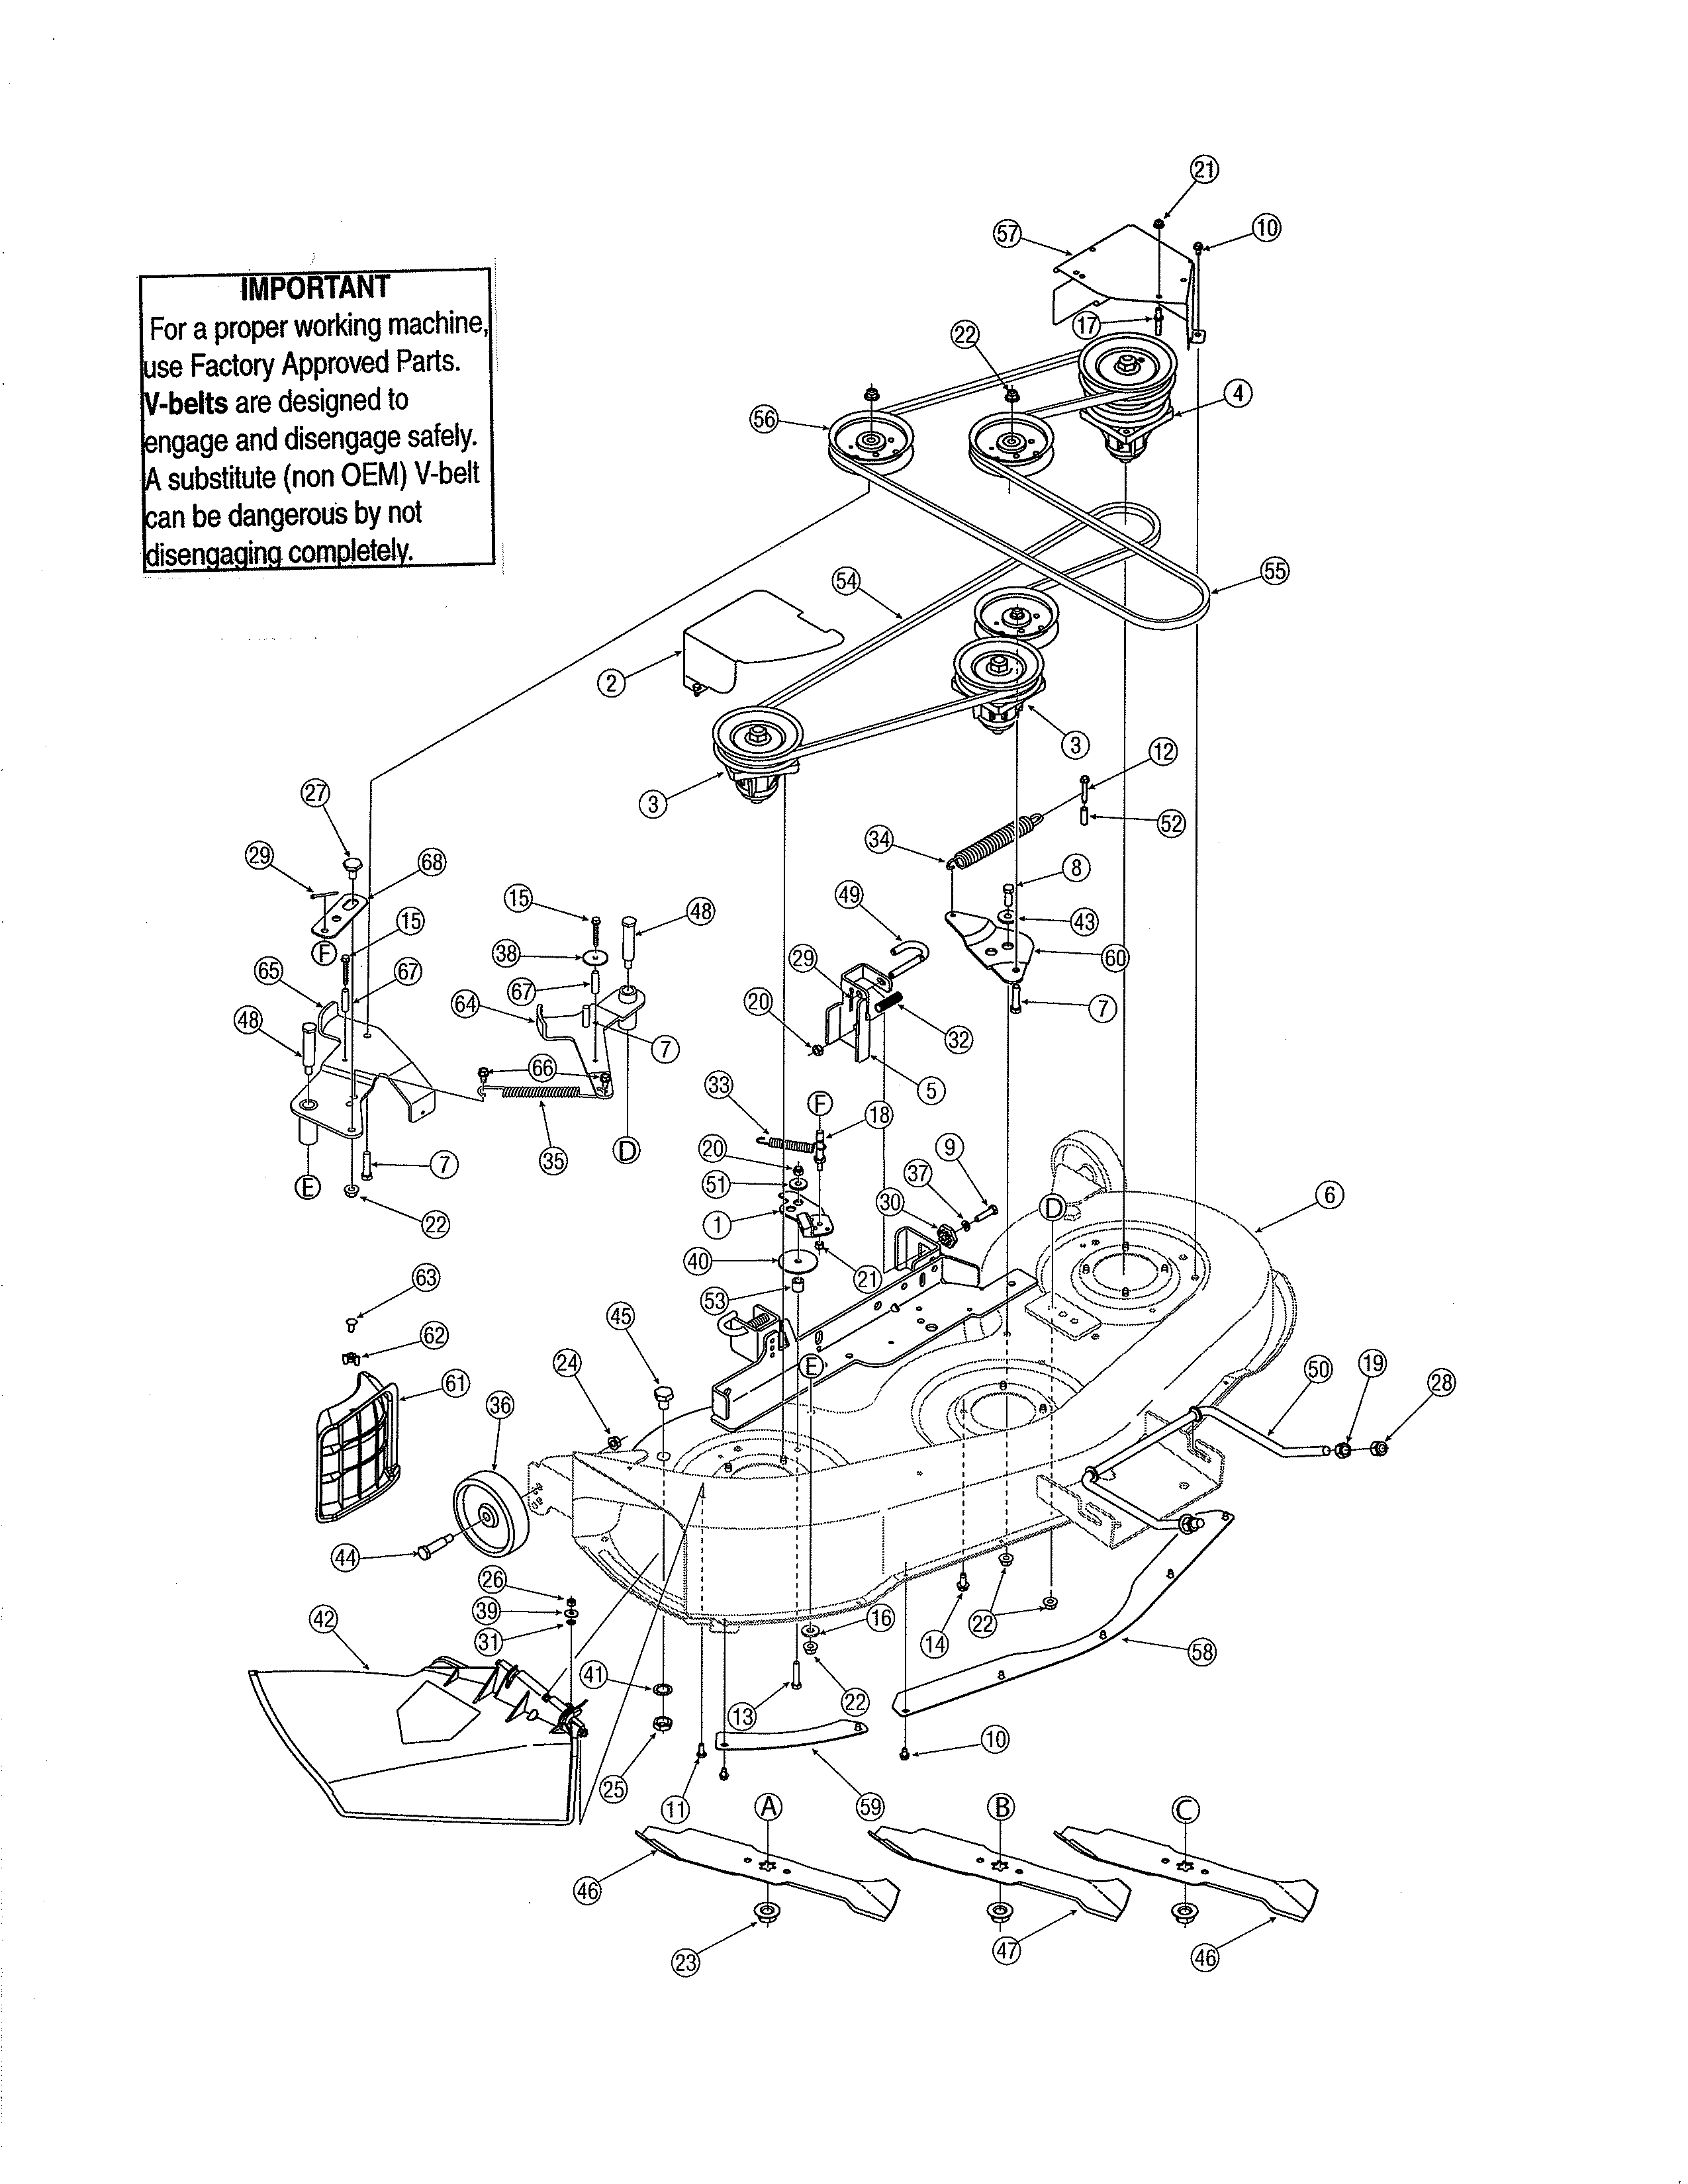 hight resolution of 46 deck manual pto diagram parts list for model 13ap605h755 yardman parts riding mower tractor parts searspartsdirect